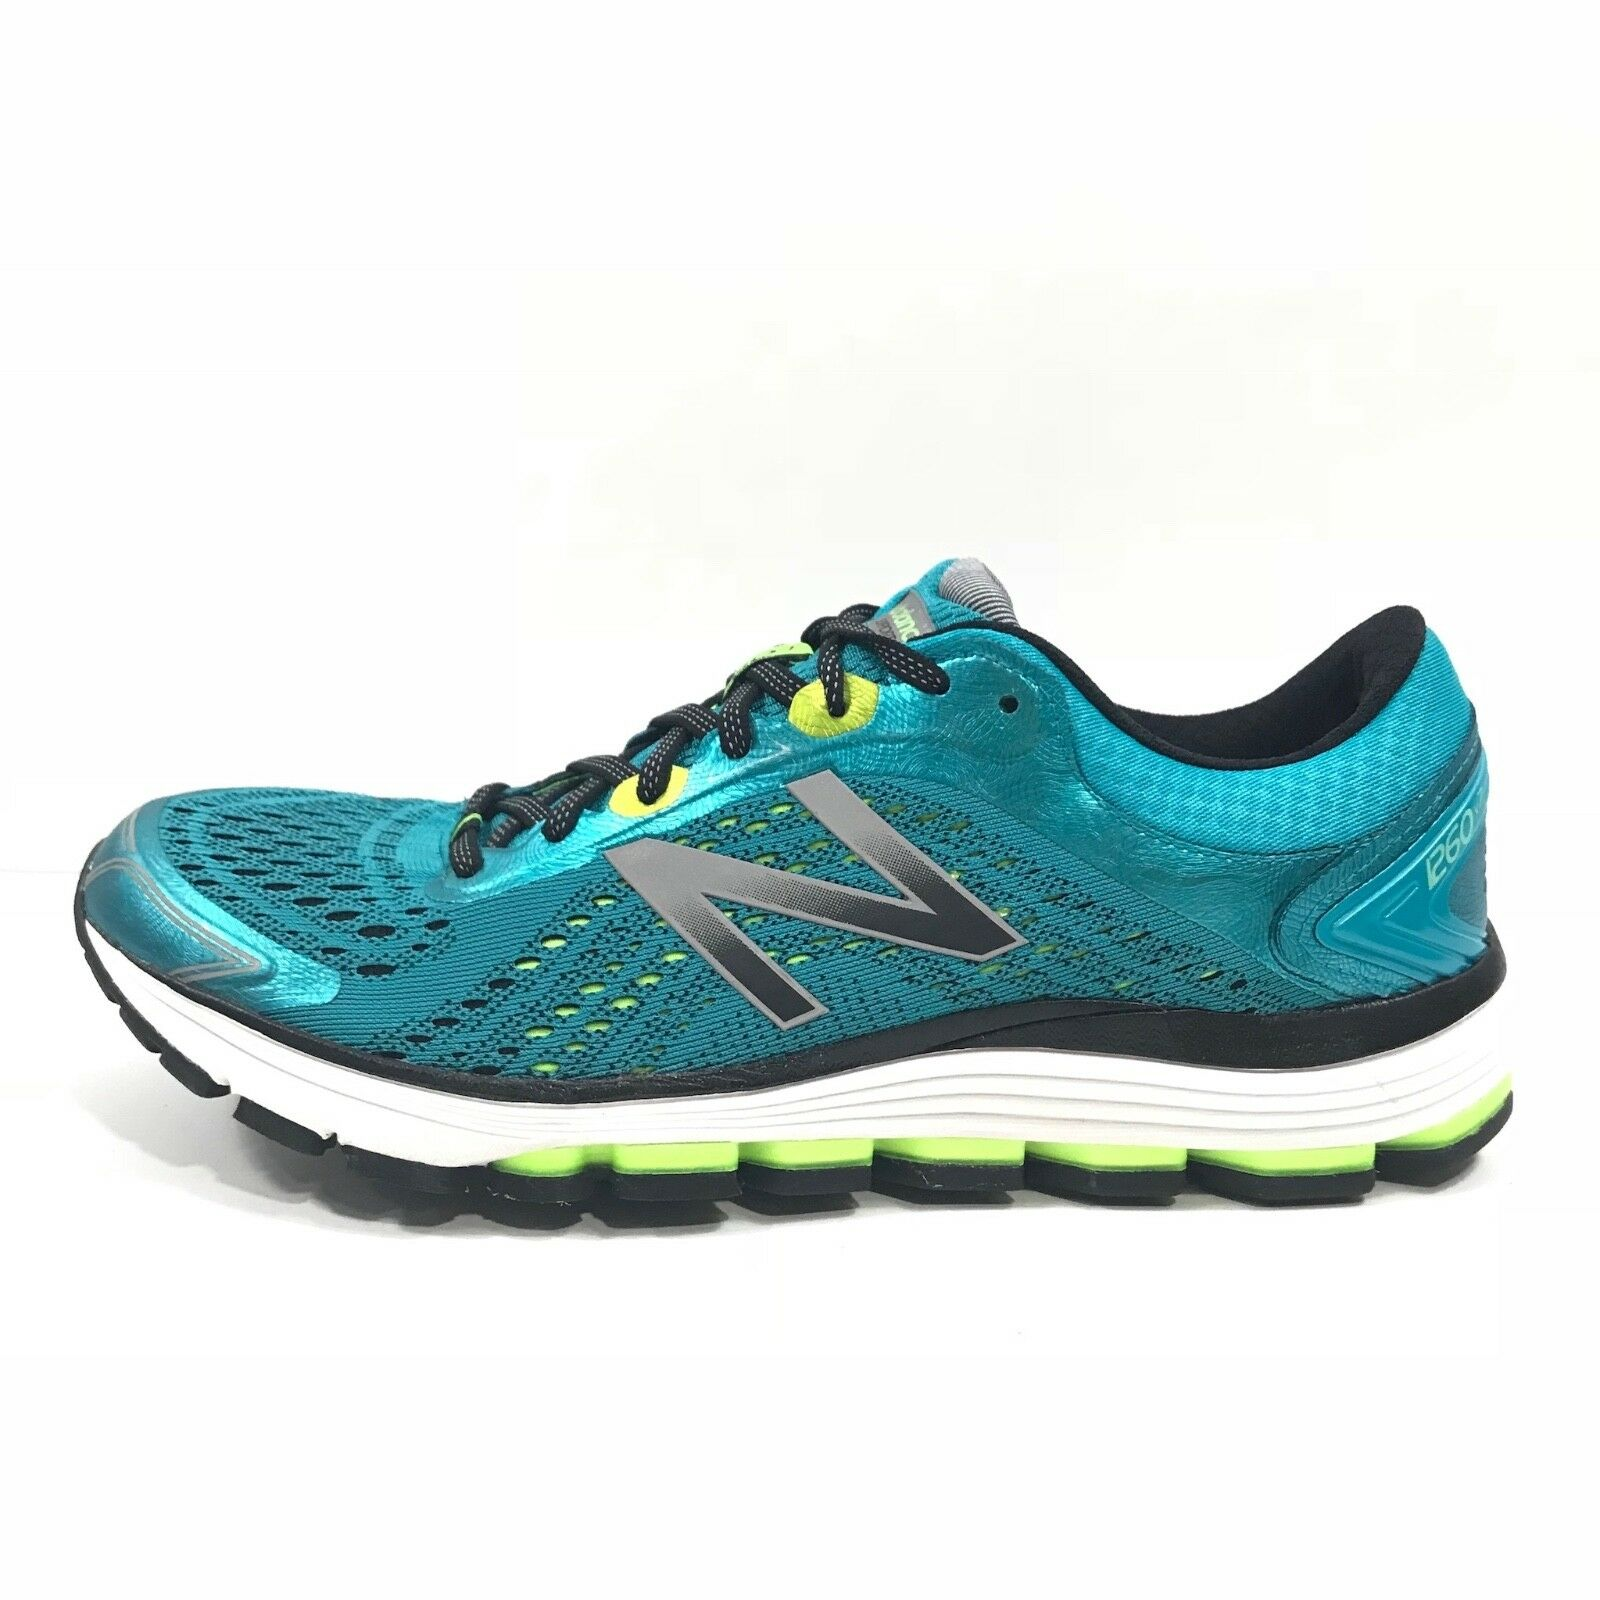 New Balance WMNS 1260v7 Support Athletic Running Shoes Turquoise Sz 11 W1260BY7